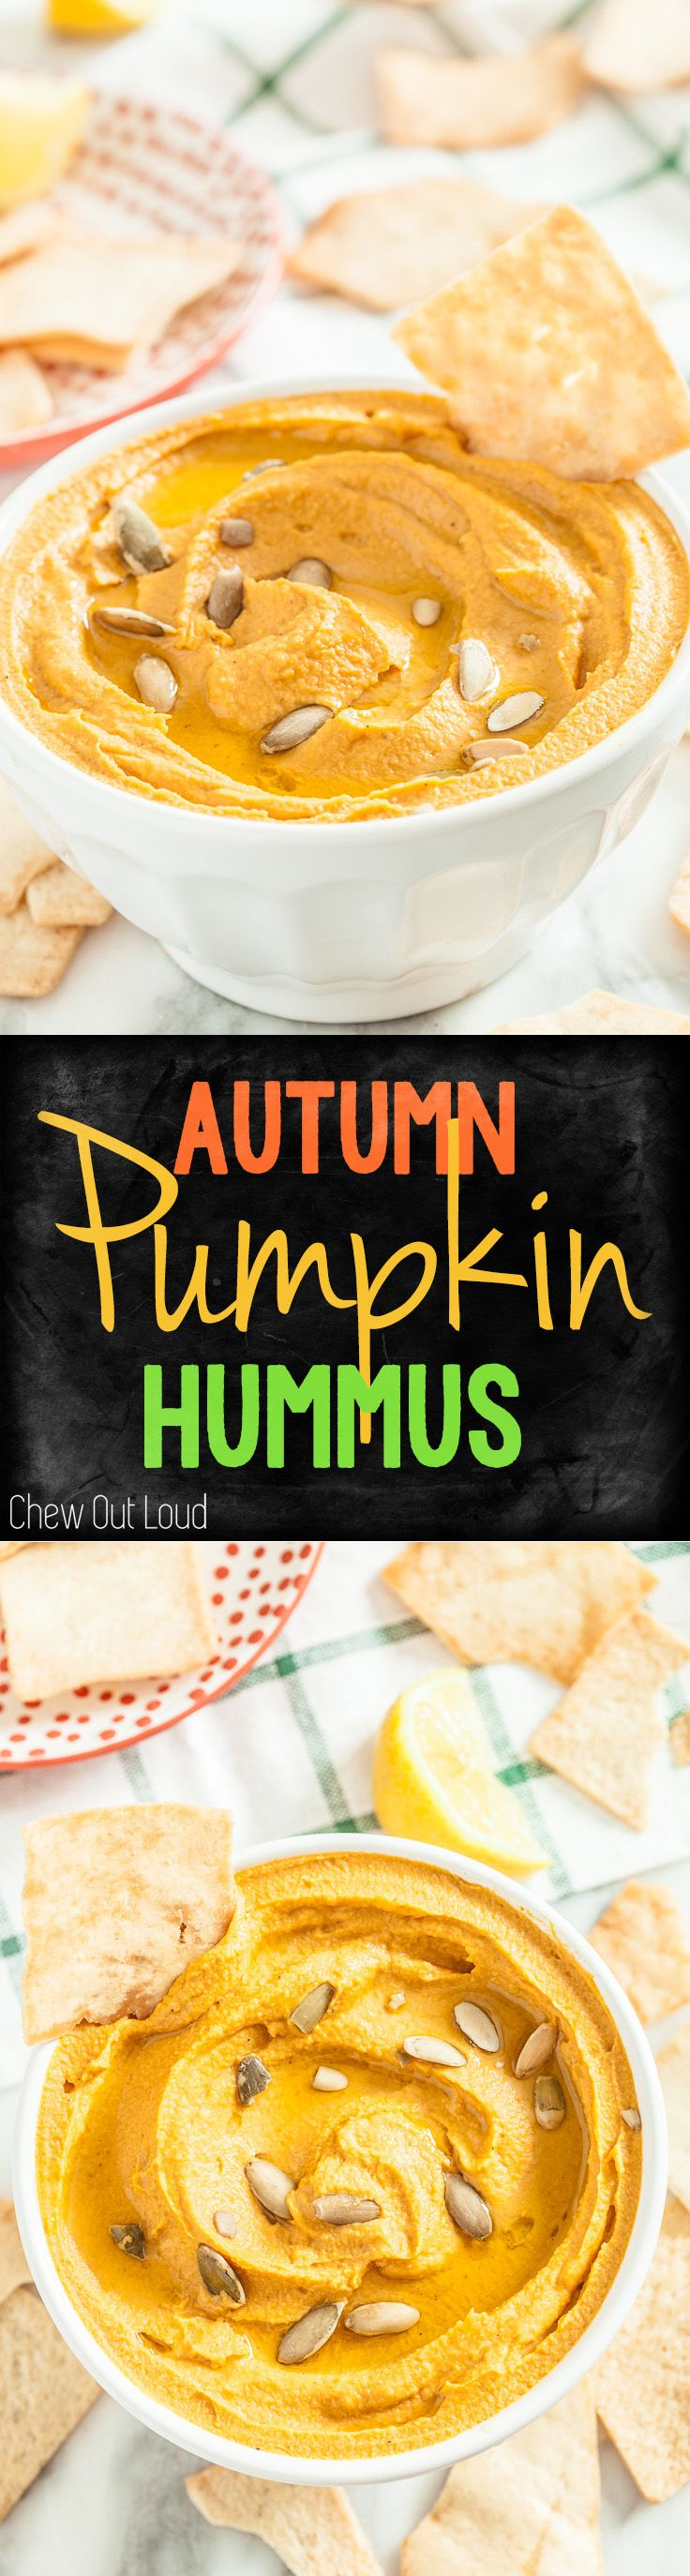 Pumpkin Hummus. Perfect appetizer or snack for fall get-togethers. Delish and healthy! #hummus #appetizer #fall